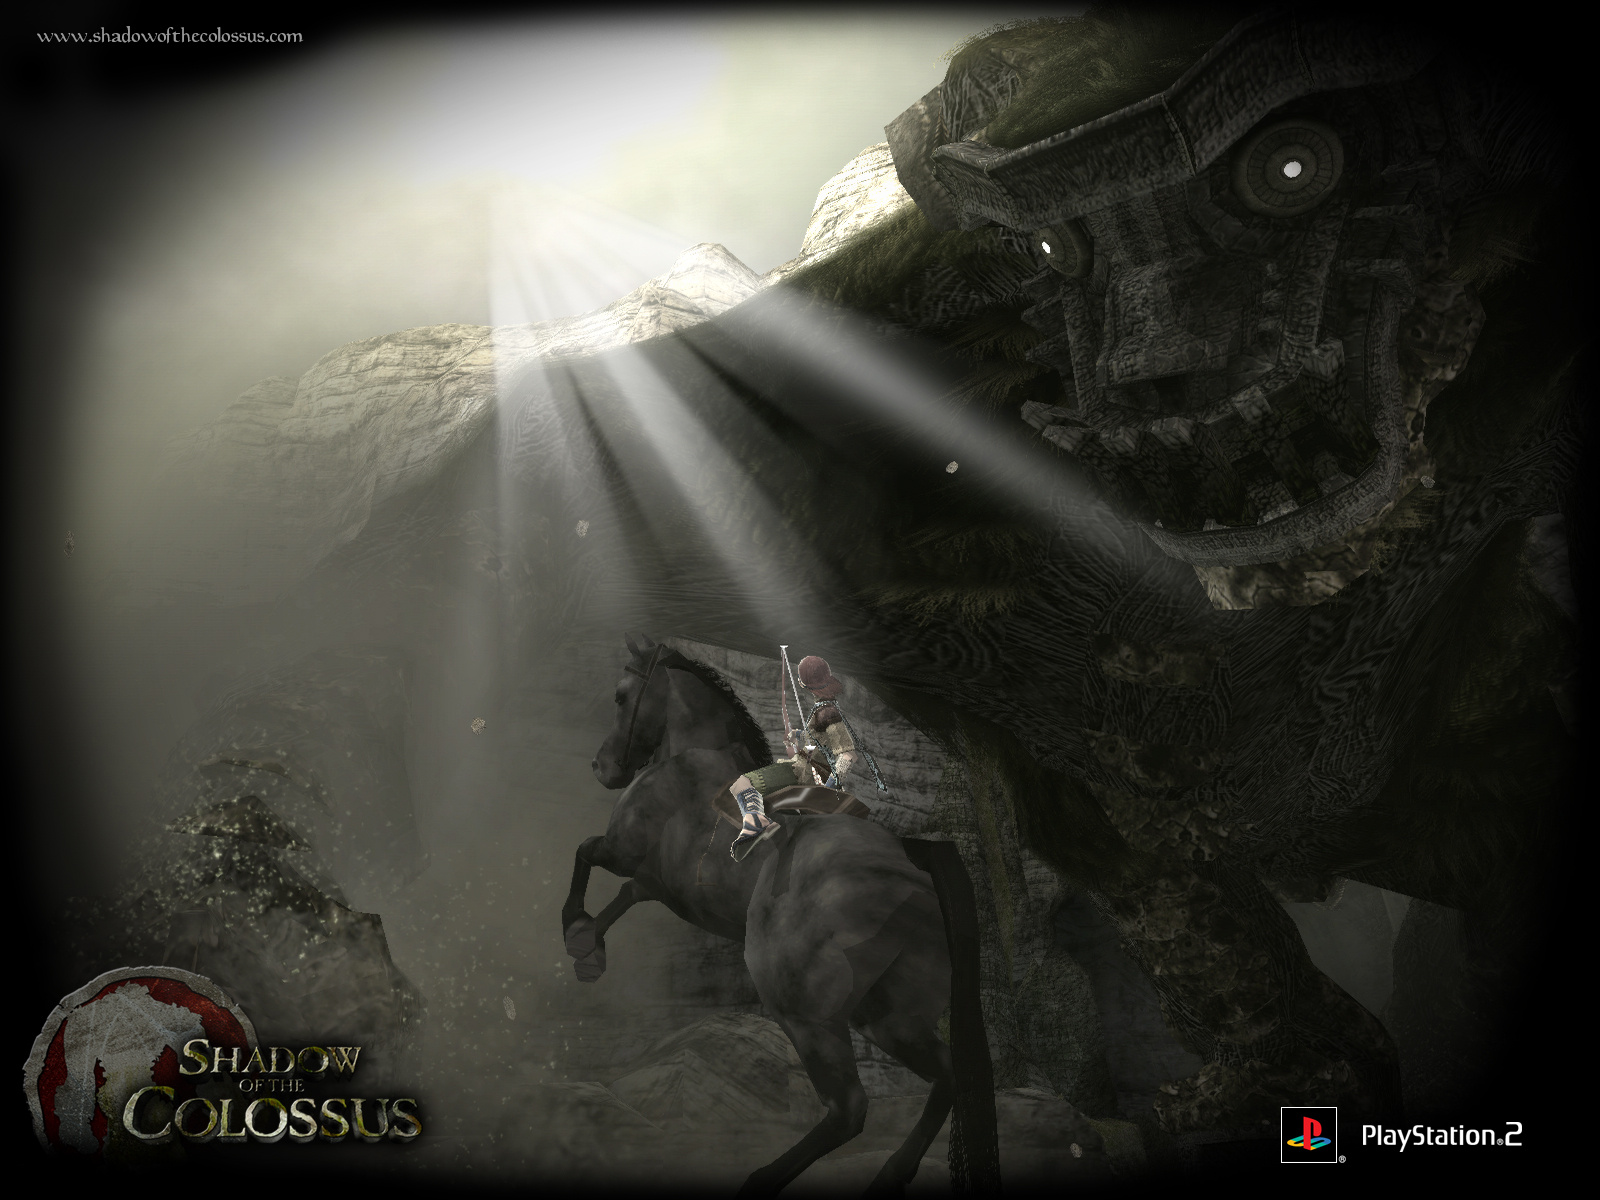 Free Download Mammoth Shadow Of The Colossus 1600x1200 For Your